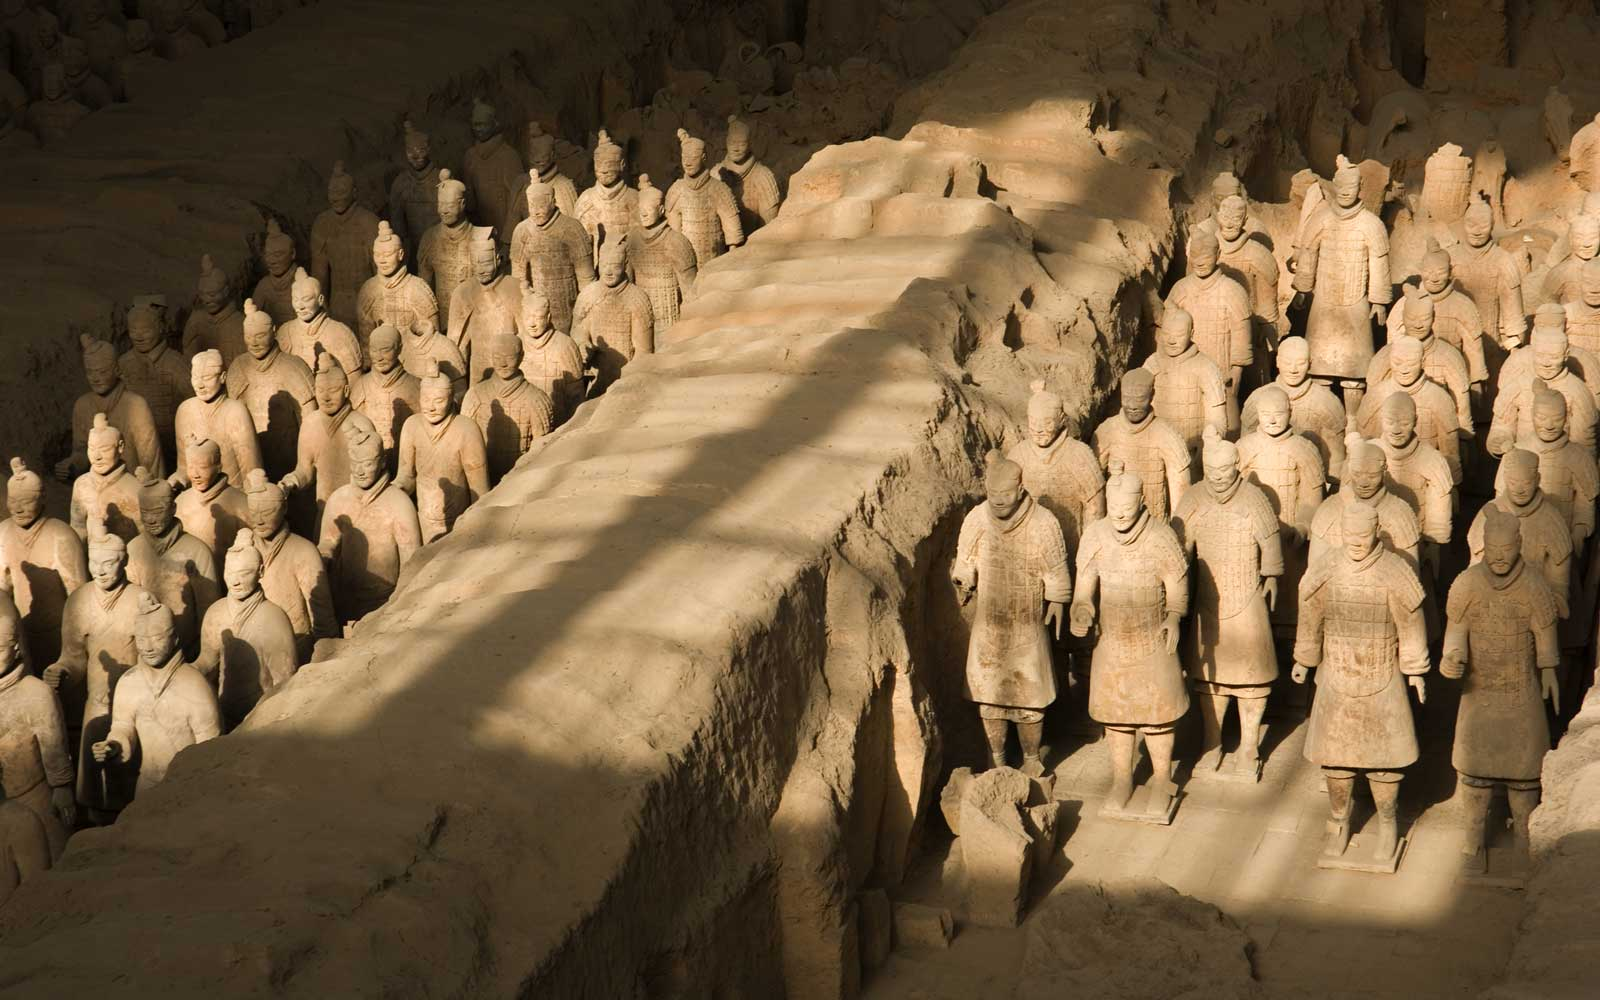 Terracotta soldiers in the Mausoleum of Emperor Qin Shi Huang, Xi'an, Shaanxi Province, China